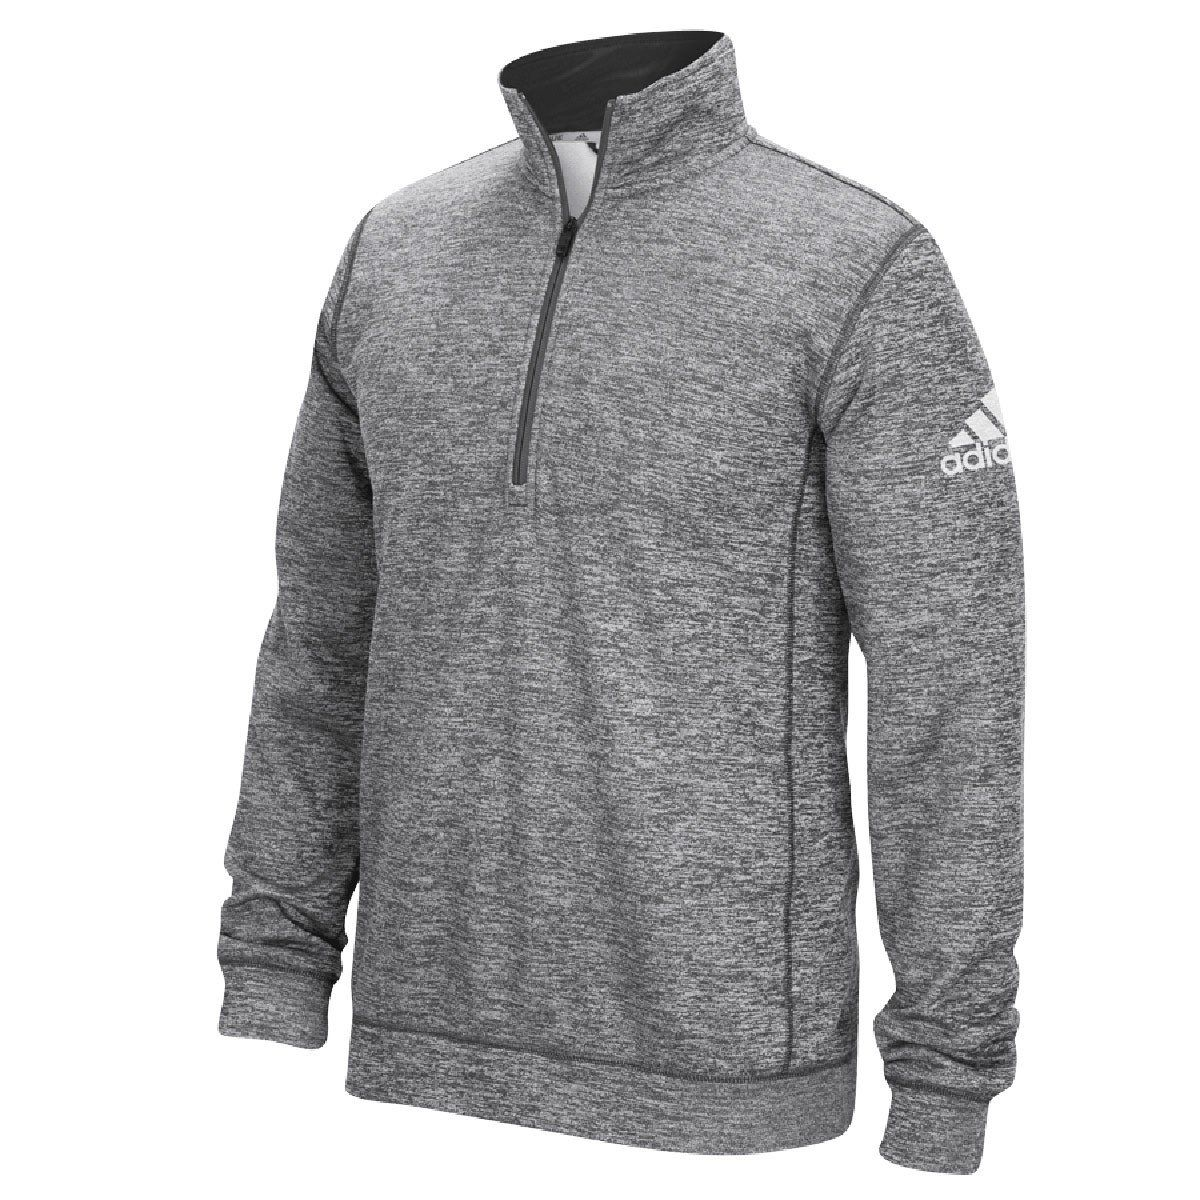 adidas 1/4 zip fleece mens